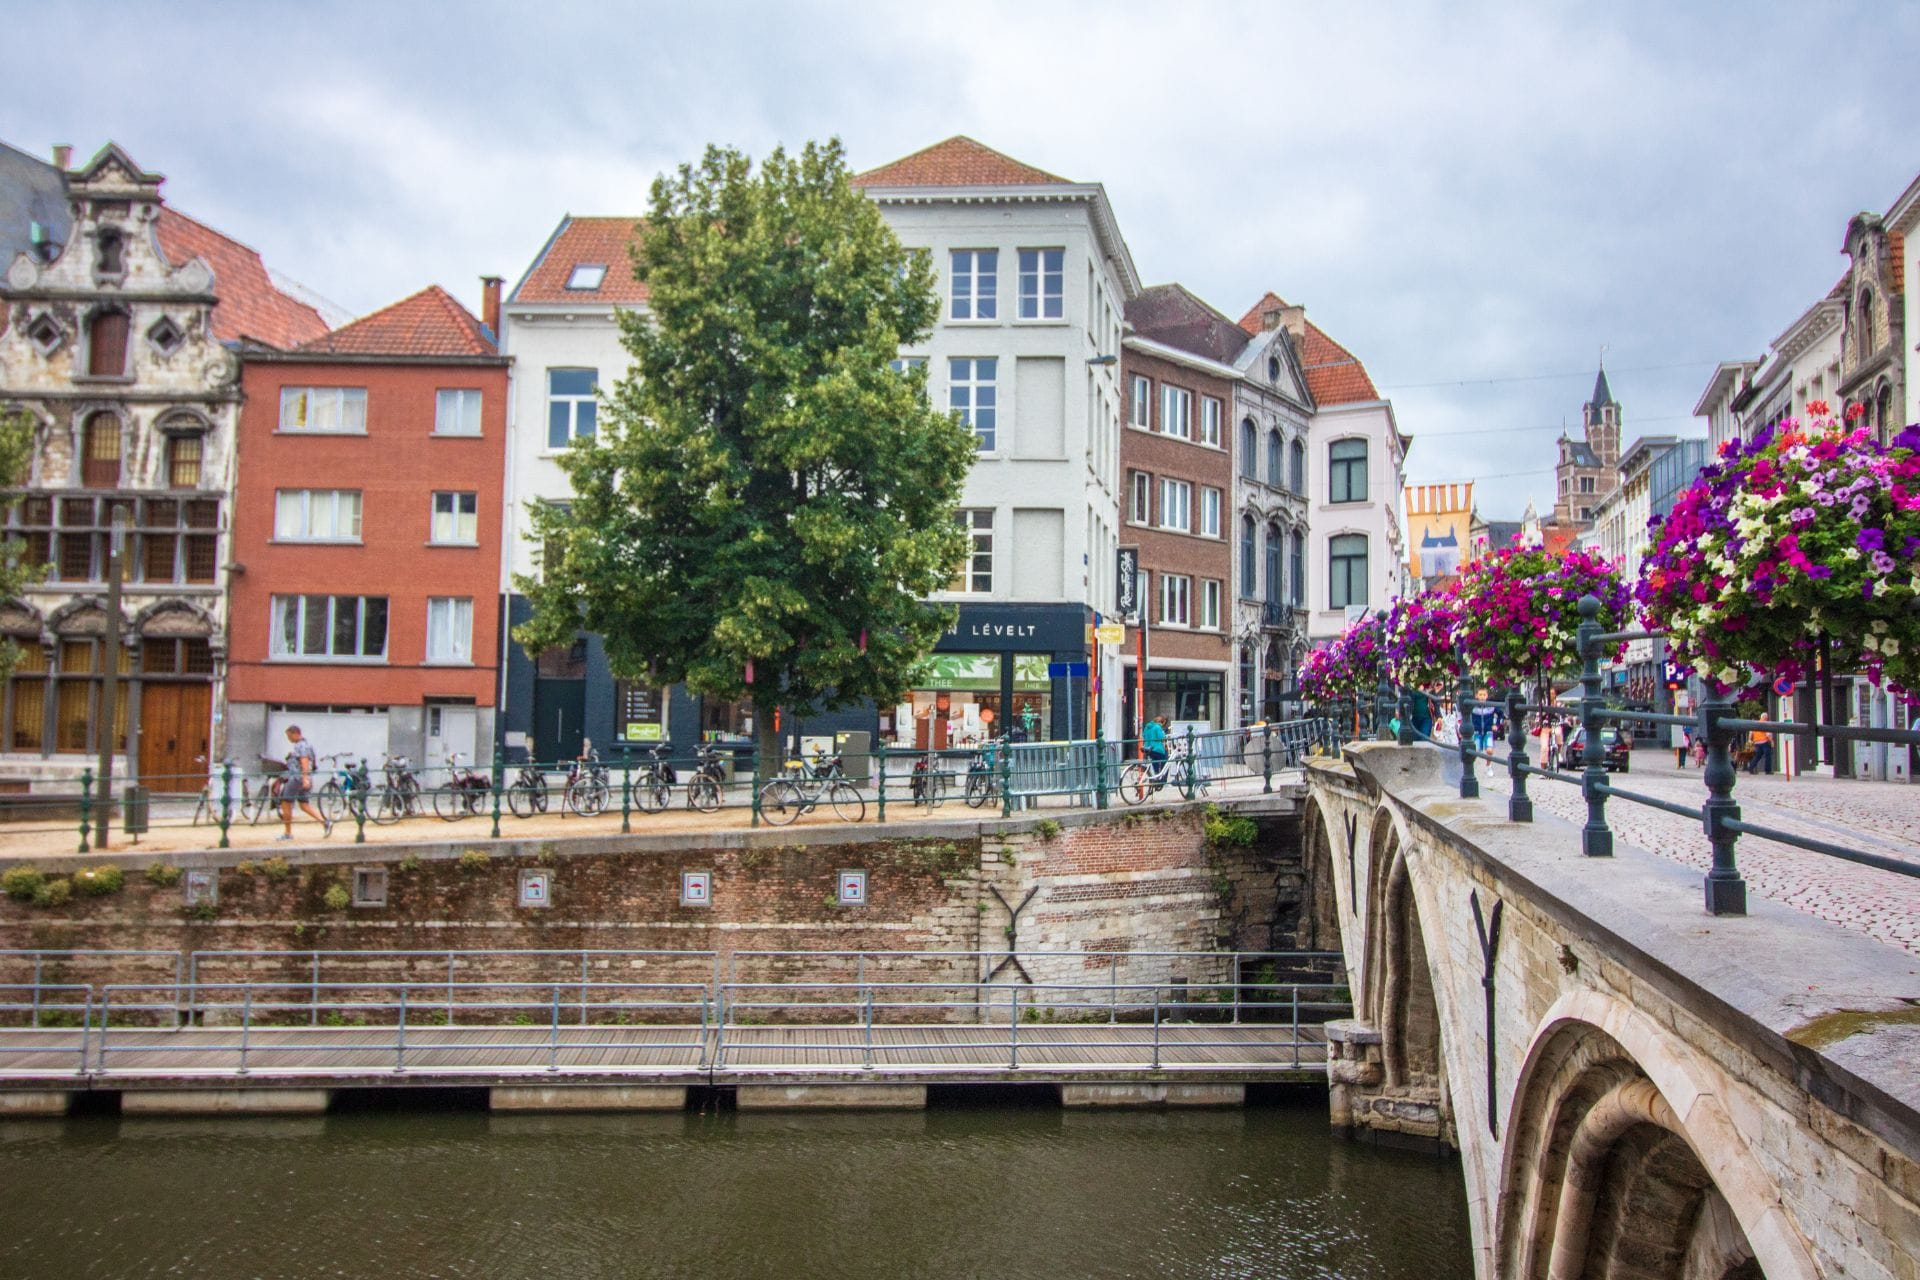 bridge-crossing-a-bike-lined-river-in-a-cute-european-city-with-colourful-houses-dylepath-things-to-do-in-mechelen-beligum